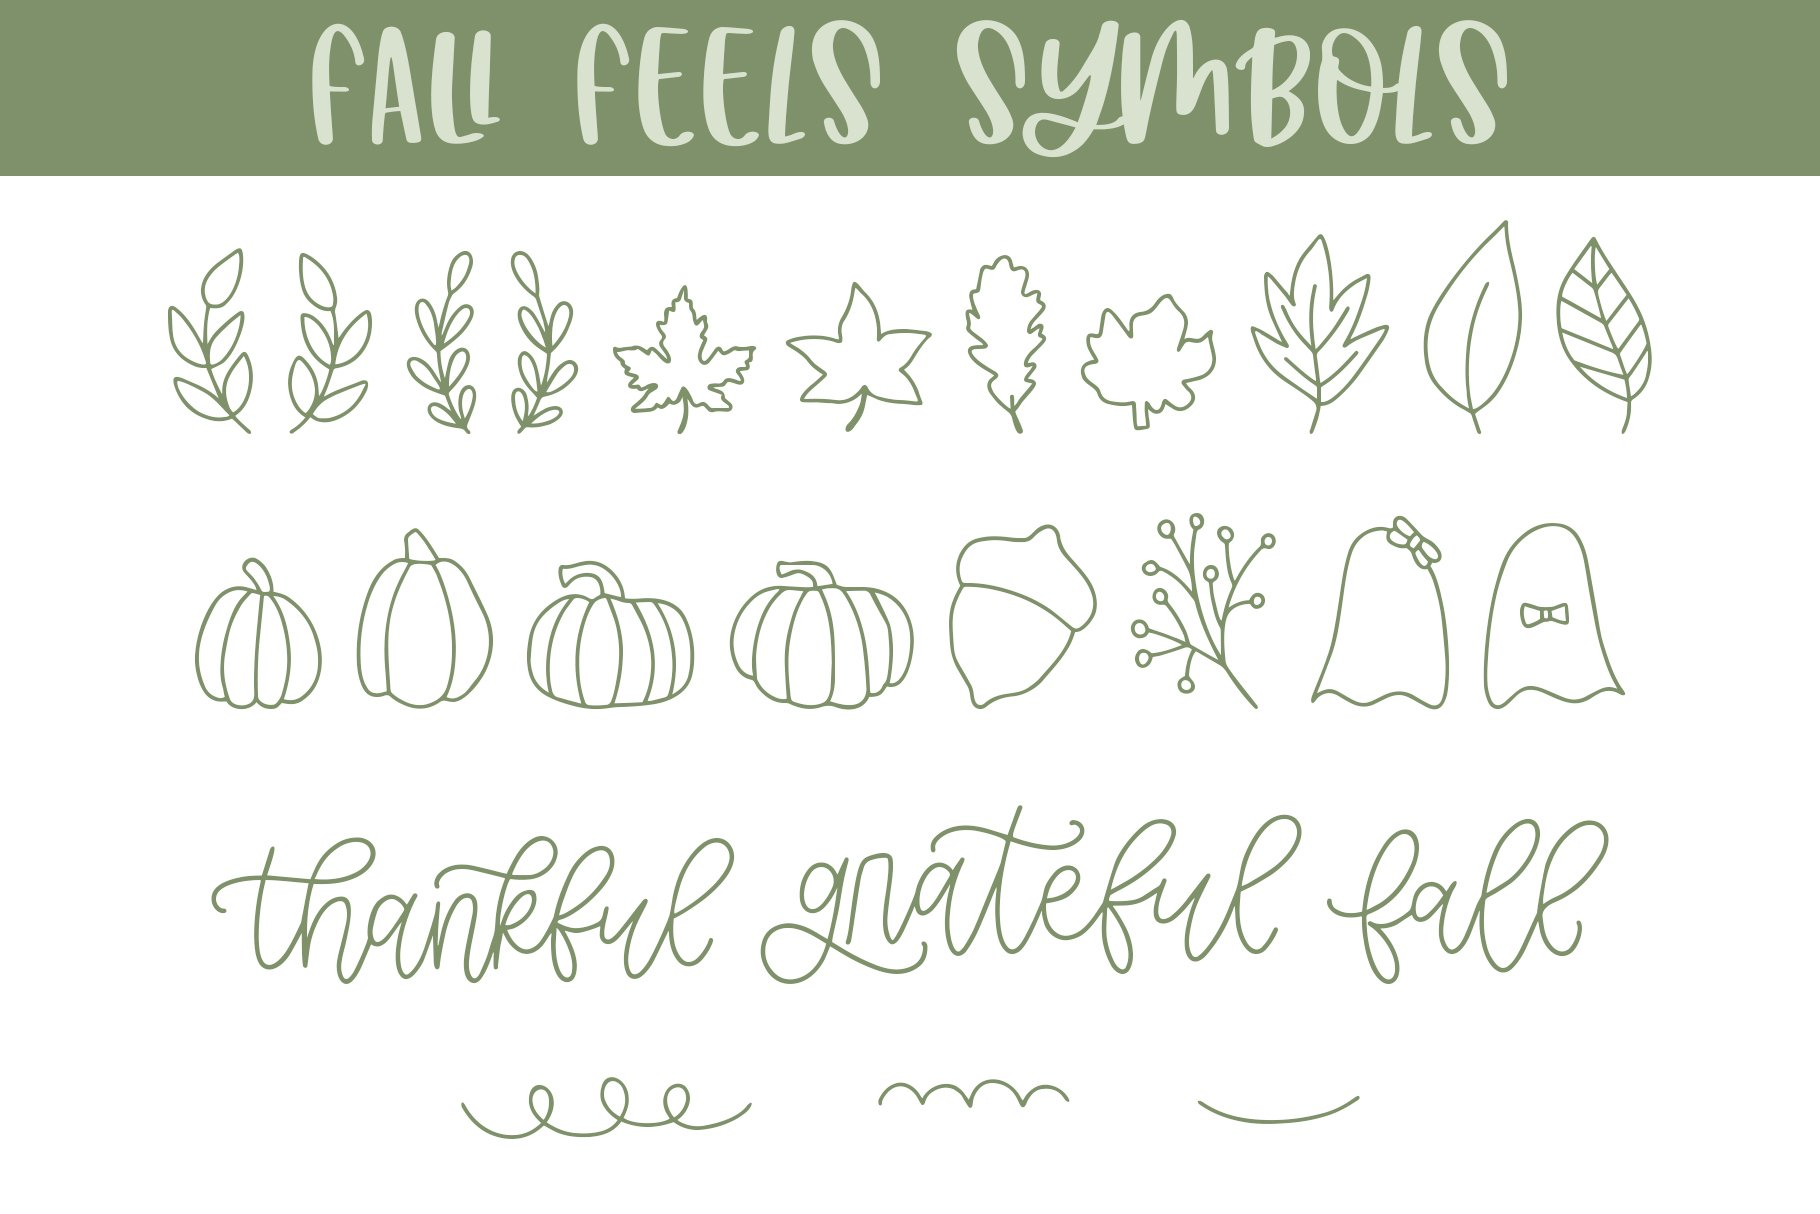 Fall Feels, Fall Doodle Font example image 3